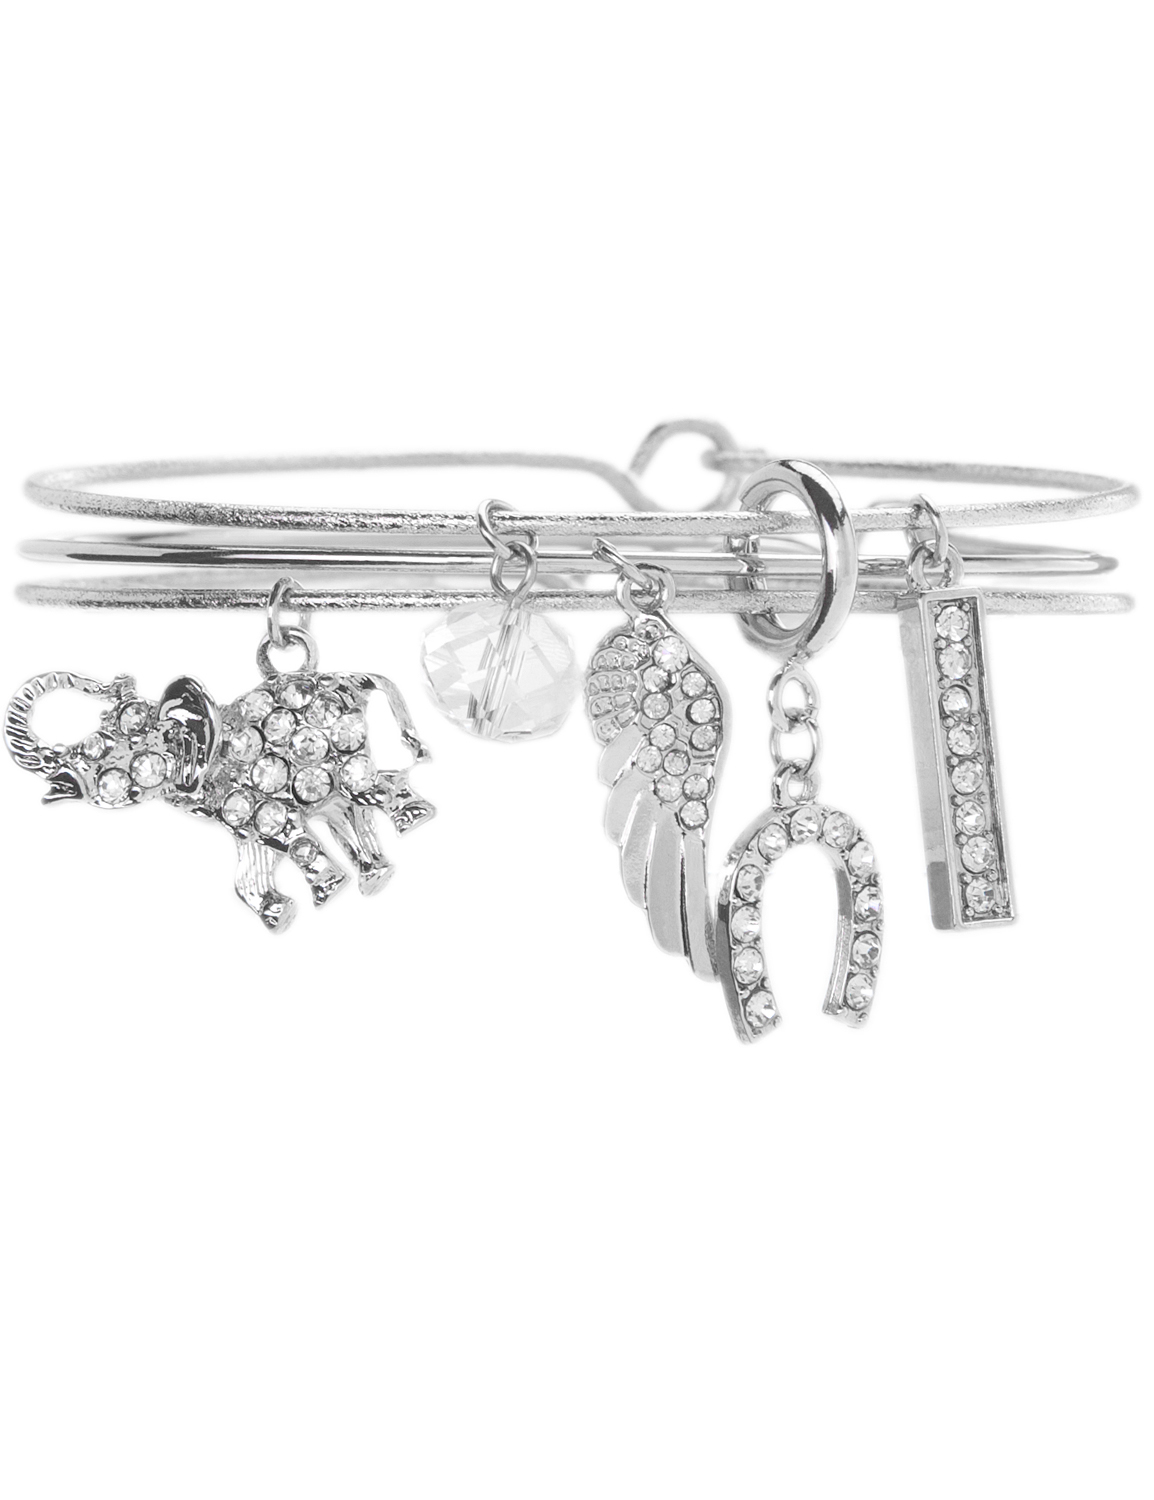 retouched product image of silver charm bangle bracelet with rhinestones